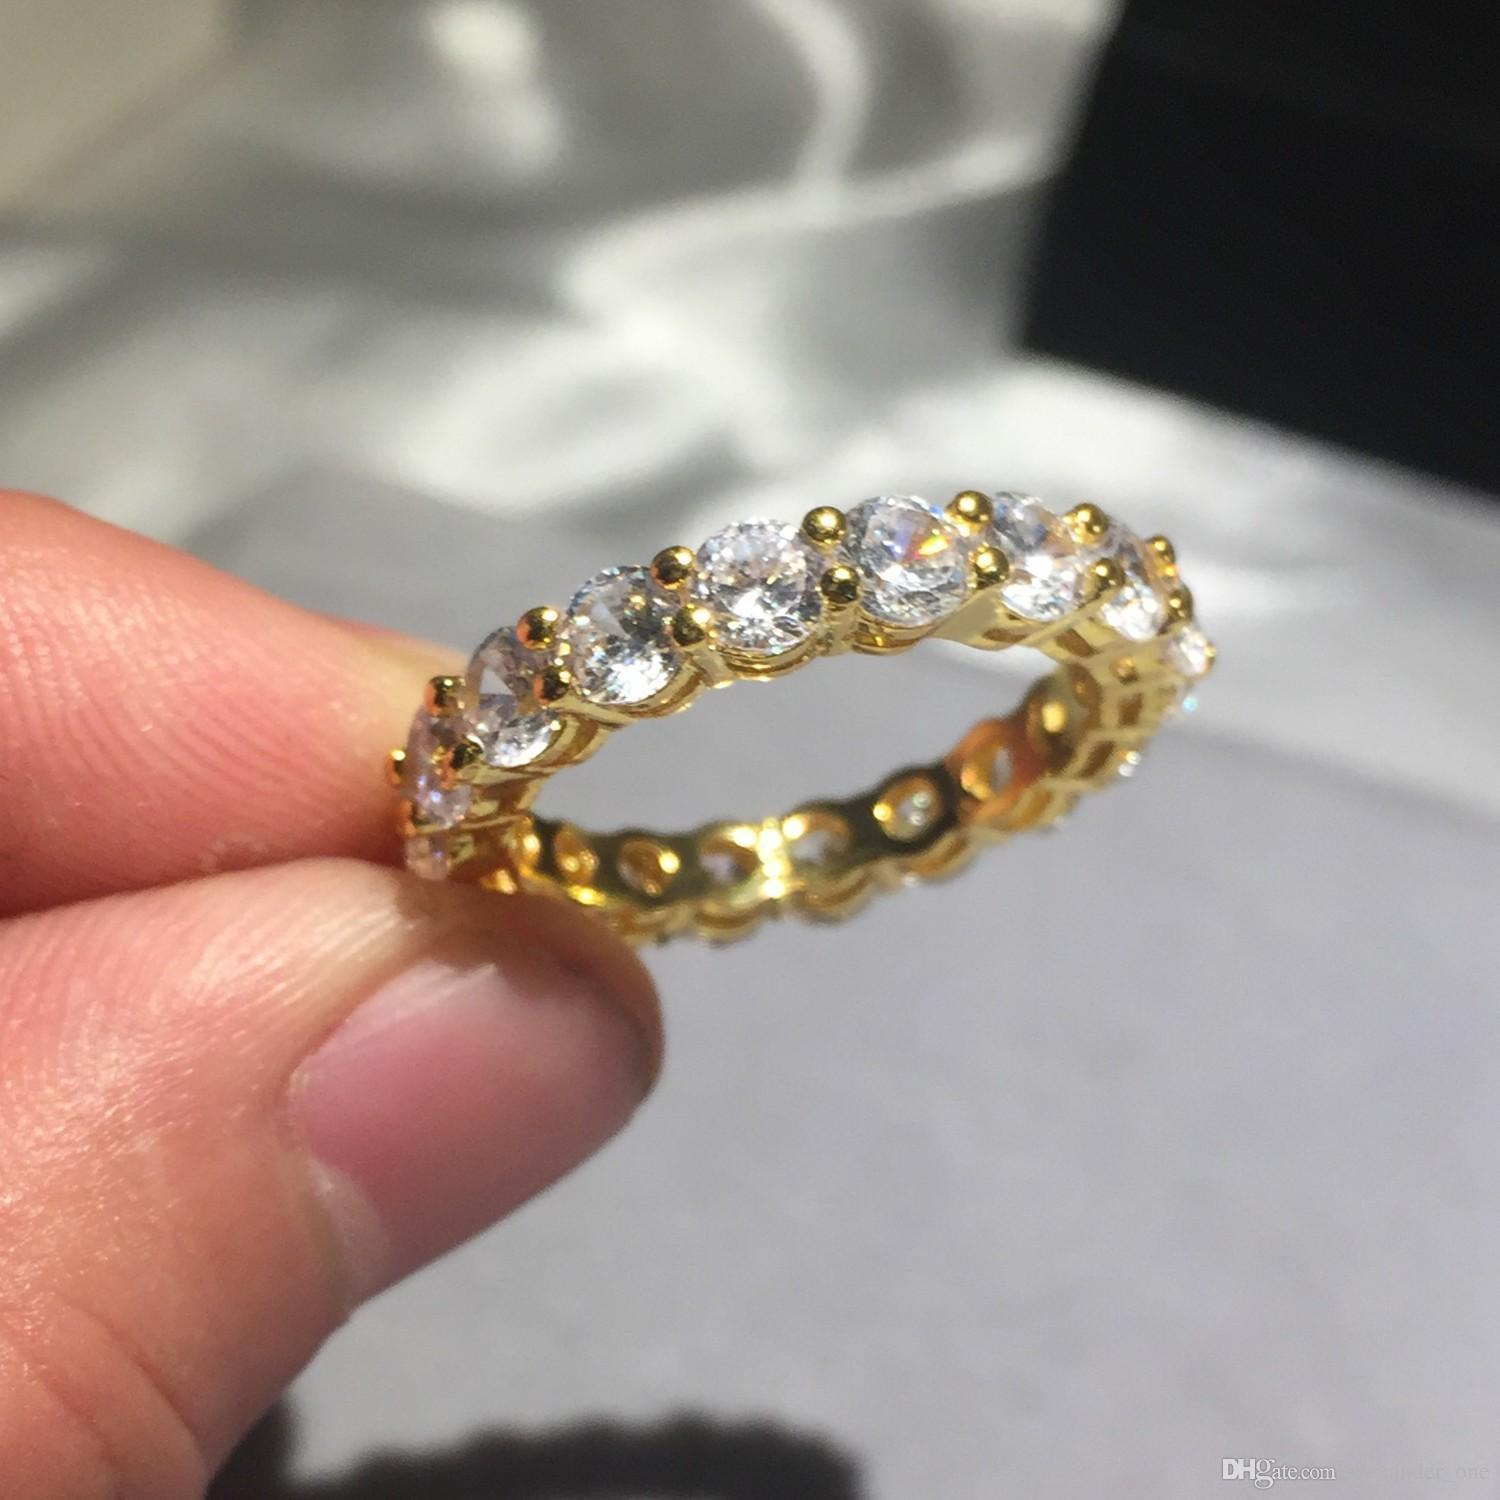 Brand 925 Silver & Gold Pave Setting Diamond Painting Full Ring Eternity  Band Engagement Wedding Stone Rings Size 5,6,7,8,9,10 In Most Current Full Micropavé Diamond Wedding Bands (View 7 of 25)